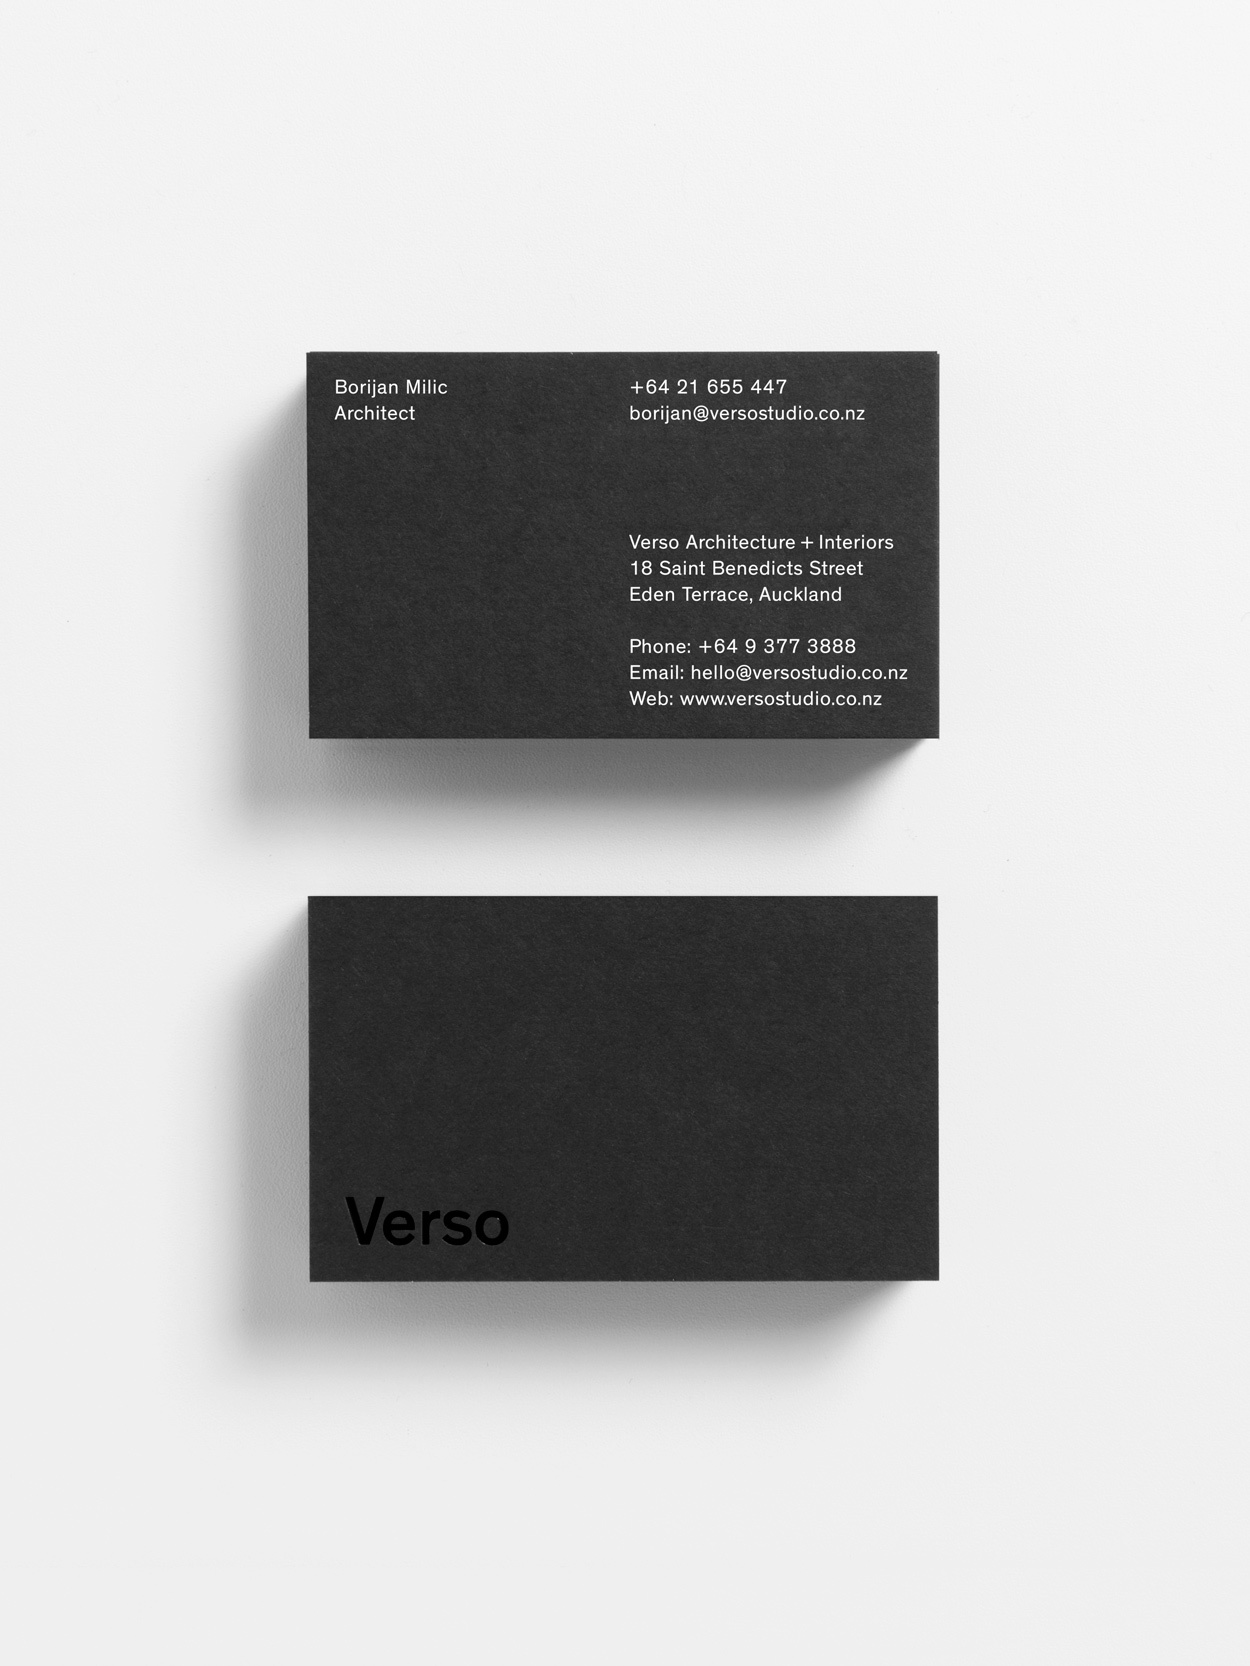 Branding and business cards with black board and white foil detail by Studio South for Auckland-based architecture and interior business Verso